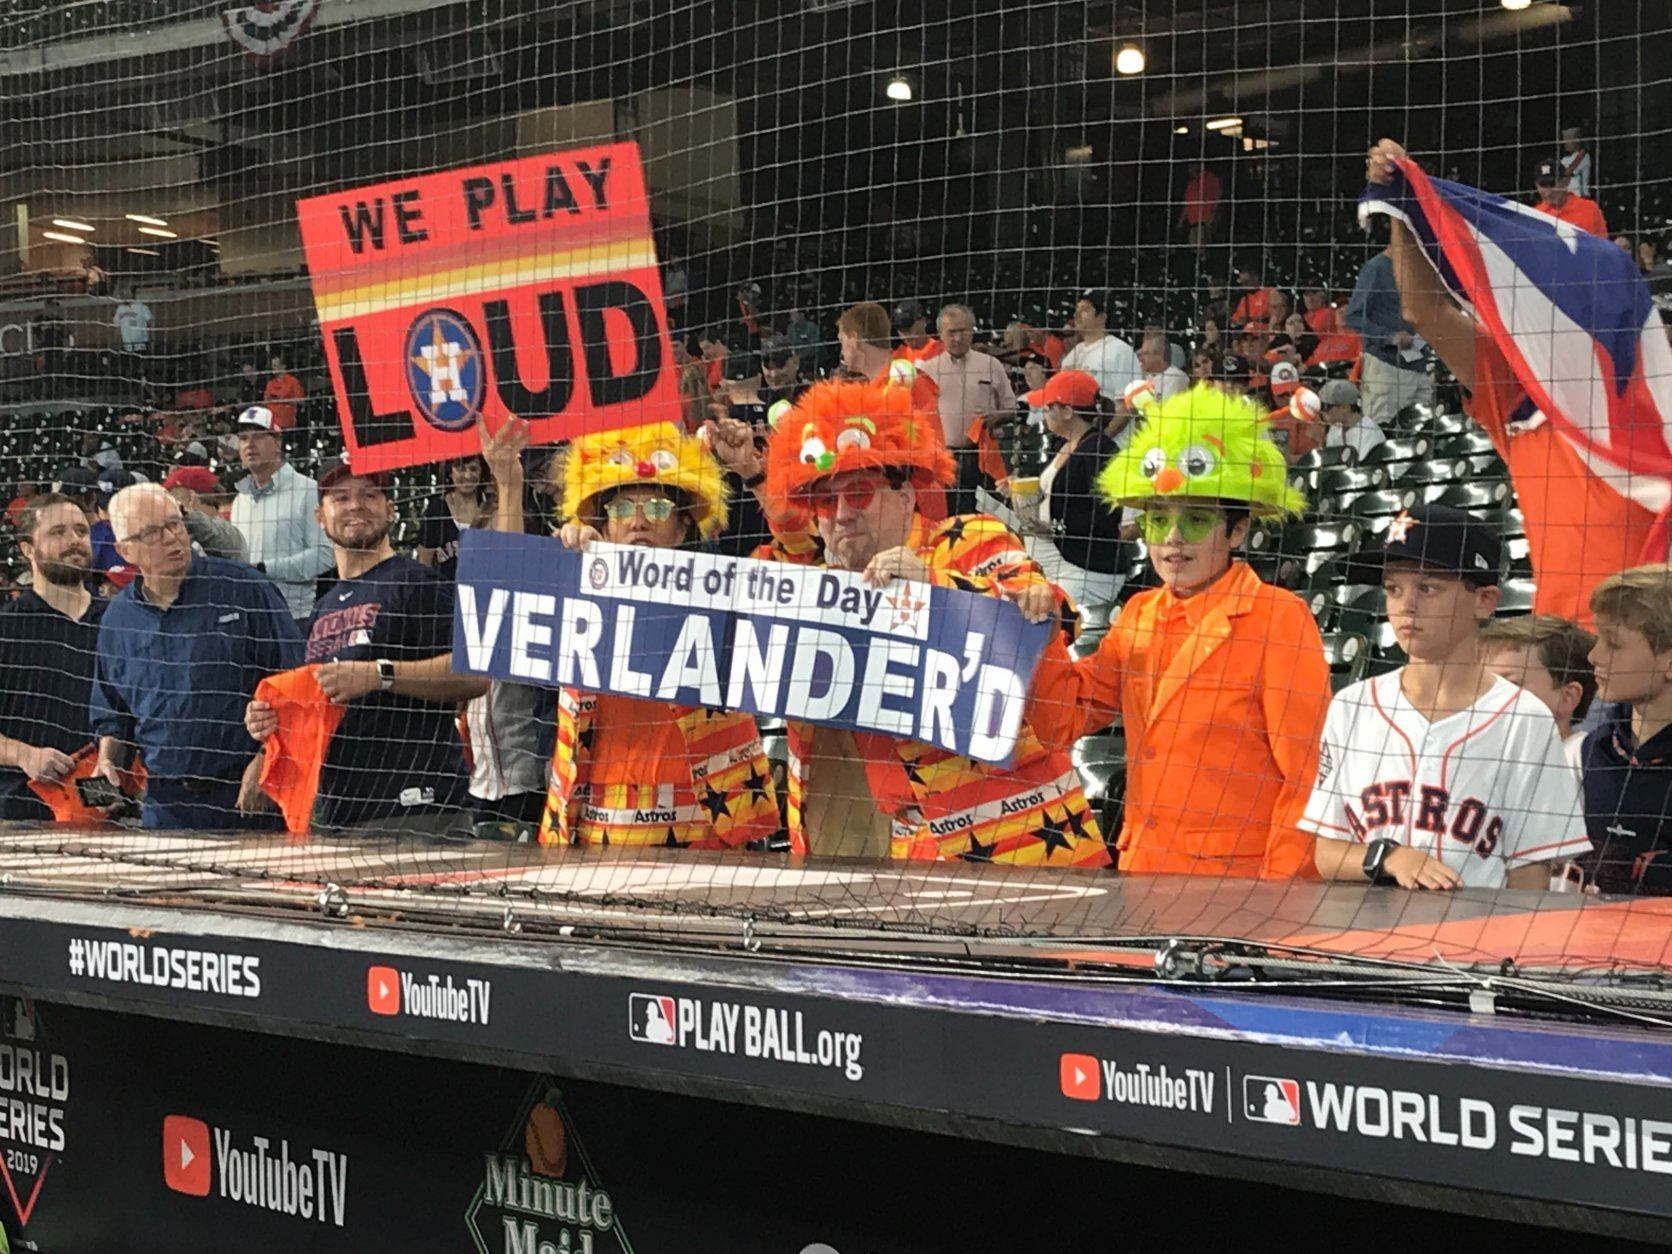 world series, astros